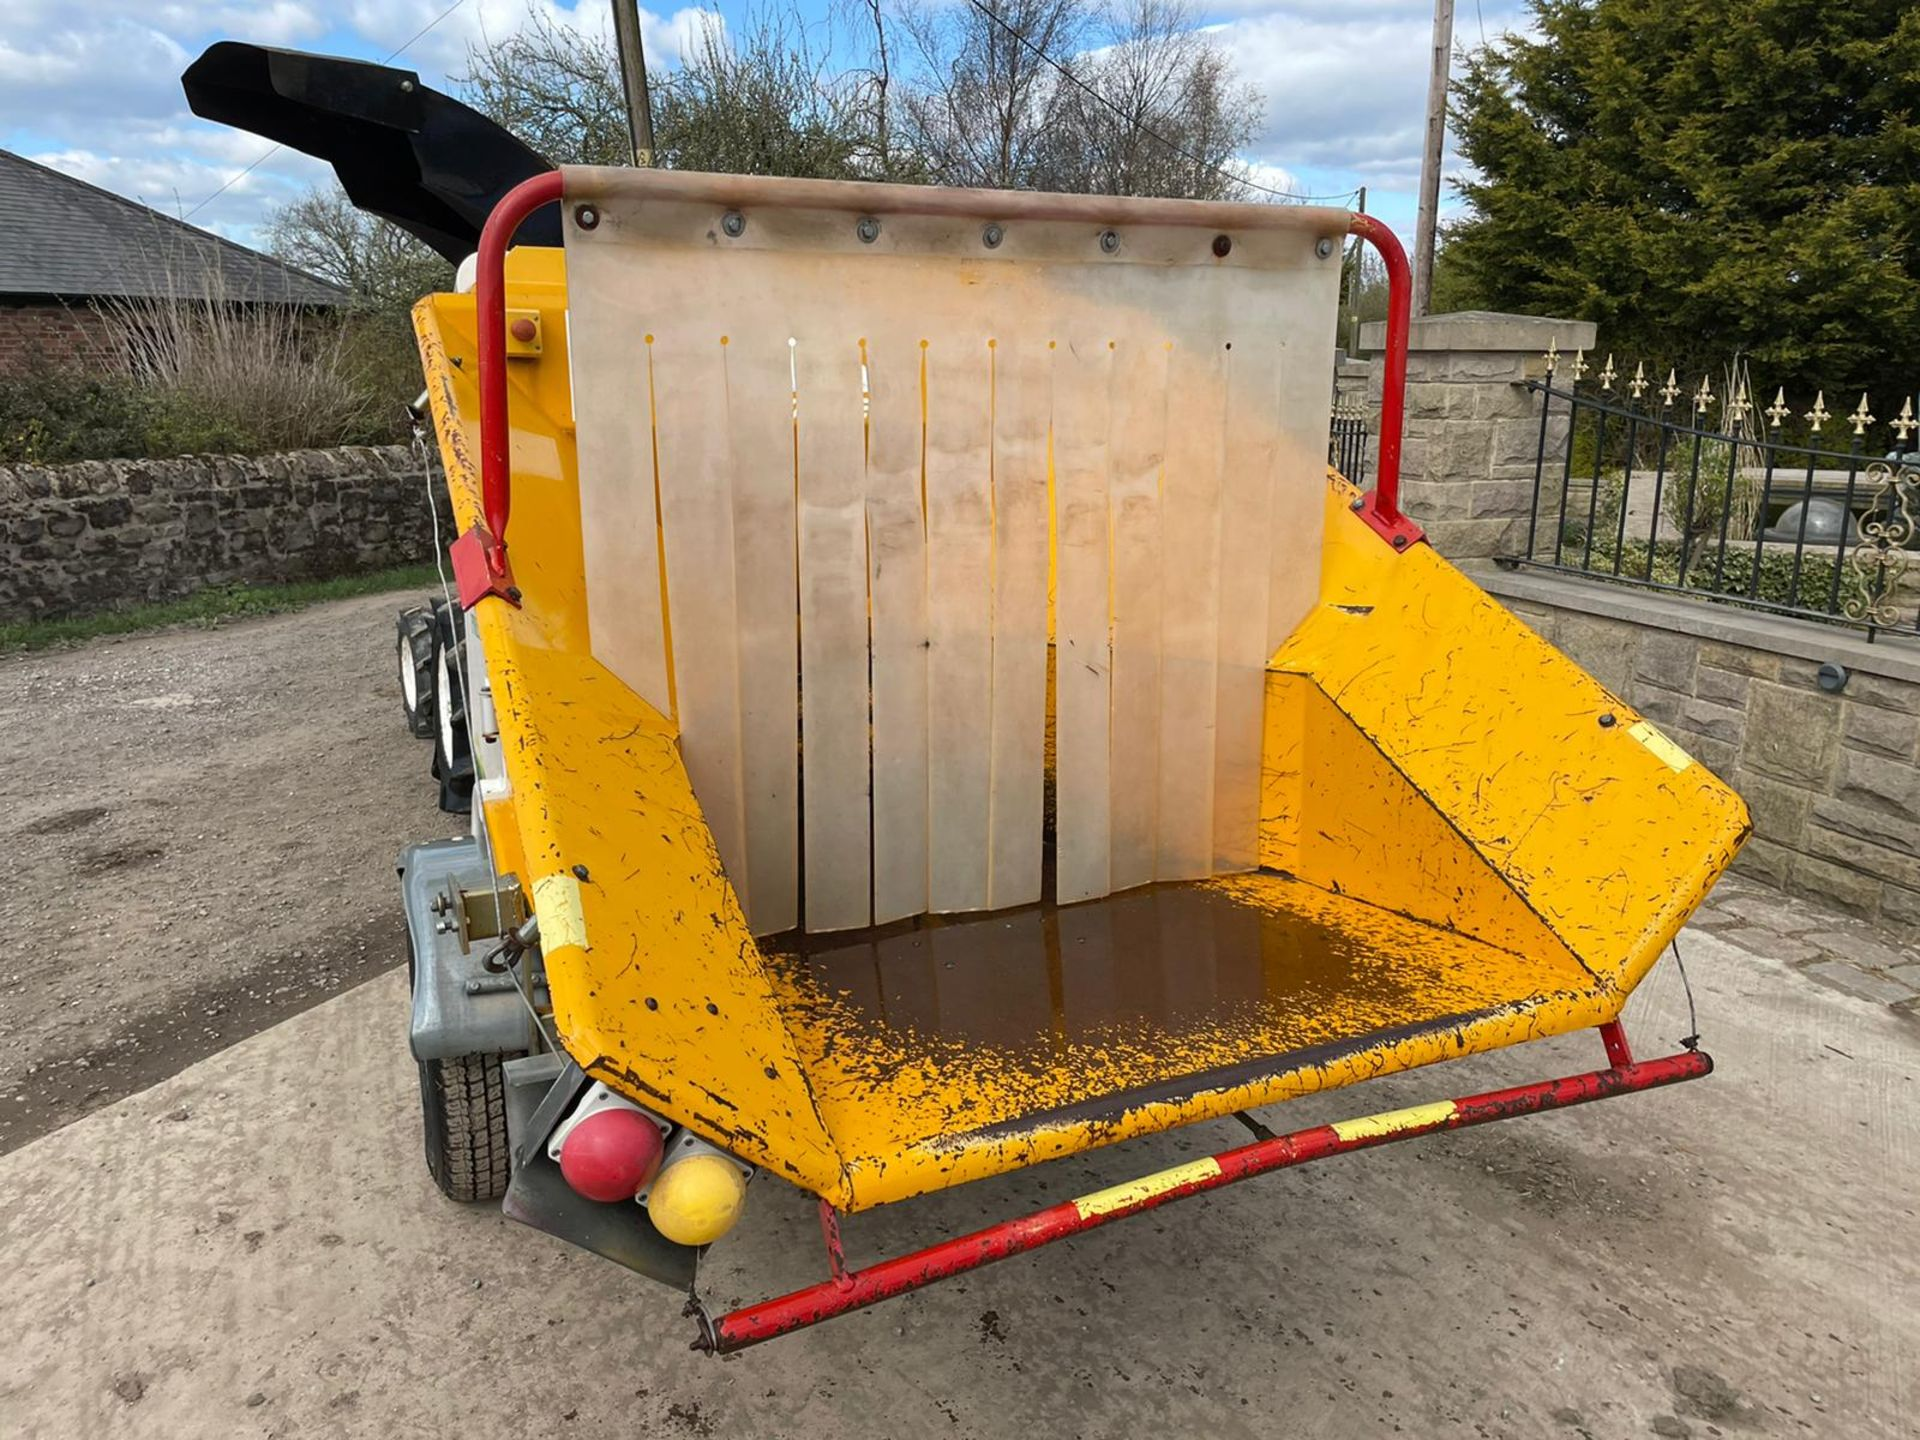 2007 SAELEN PREMIUM WOOD CHIPPER, RUNS AND CHIPS, IN GOOD CONDITION, LOW 160 HOURS *PLUS VAT* - Image 5 of 7